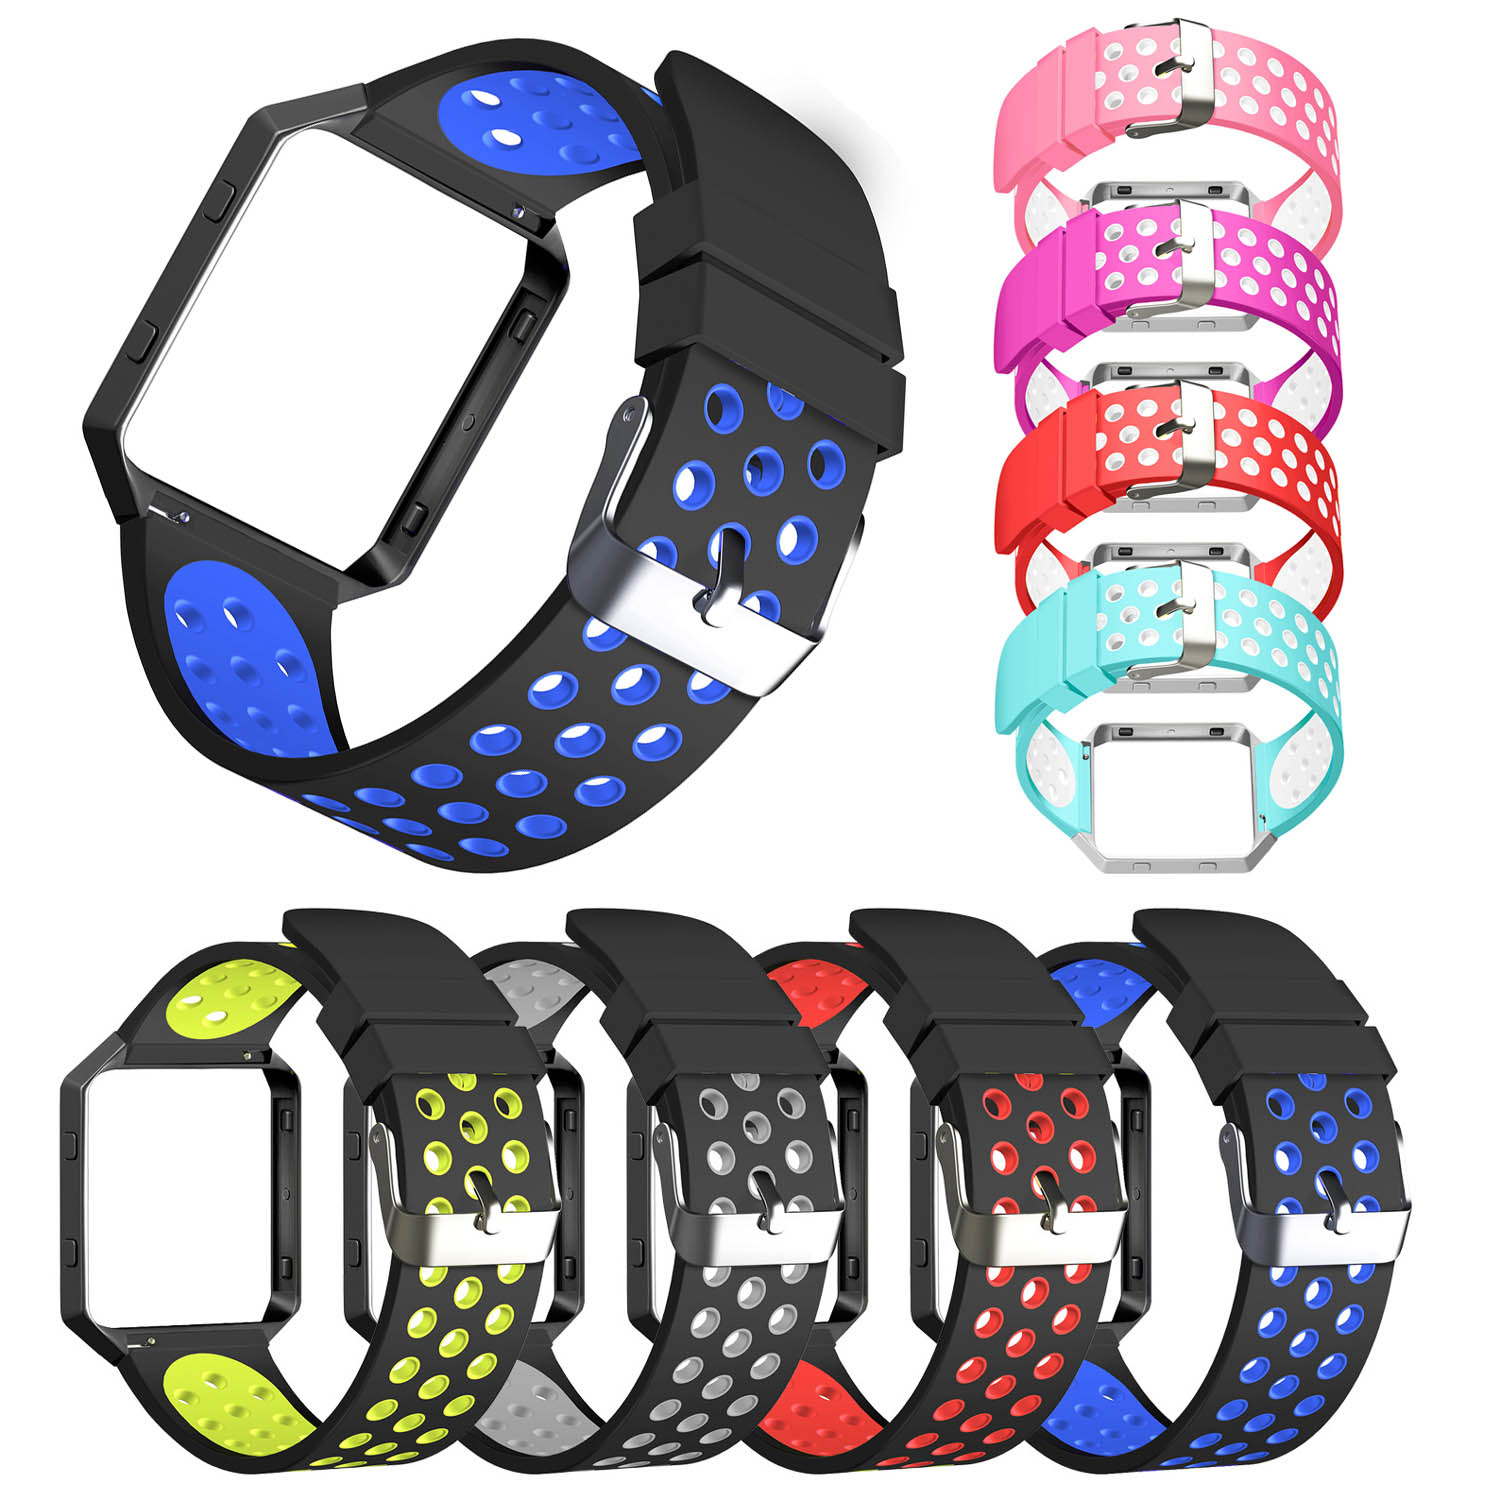 10 Colors Replacement Watch Strap For Fitbit Blaze Bands Sport Soft Silicone For Fitbit Blaze Smart Fitness Watch With Frame carlywet 23mm black 316l stainless steel replacement watch strap belt bracelet with case metal frame for fitbit blaze 23 watch